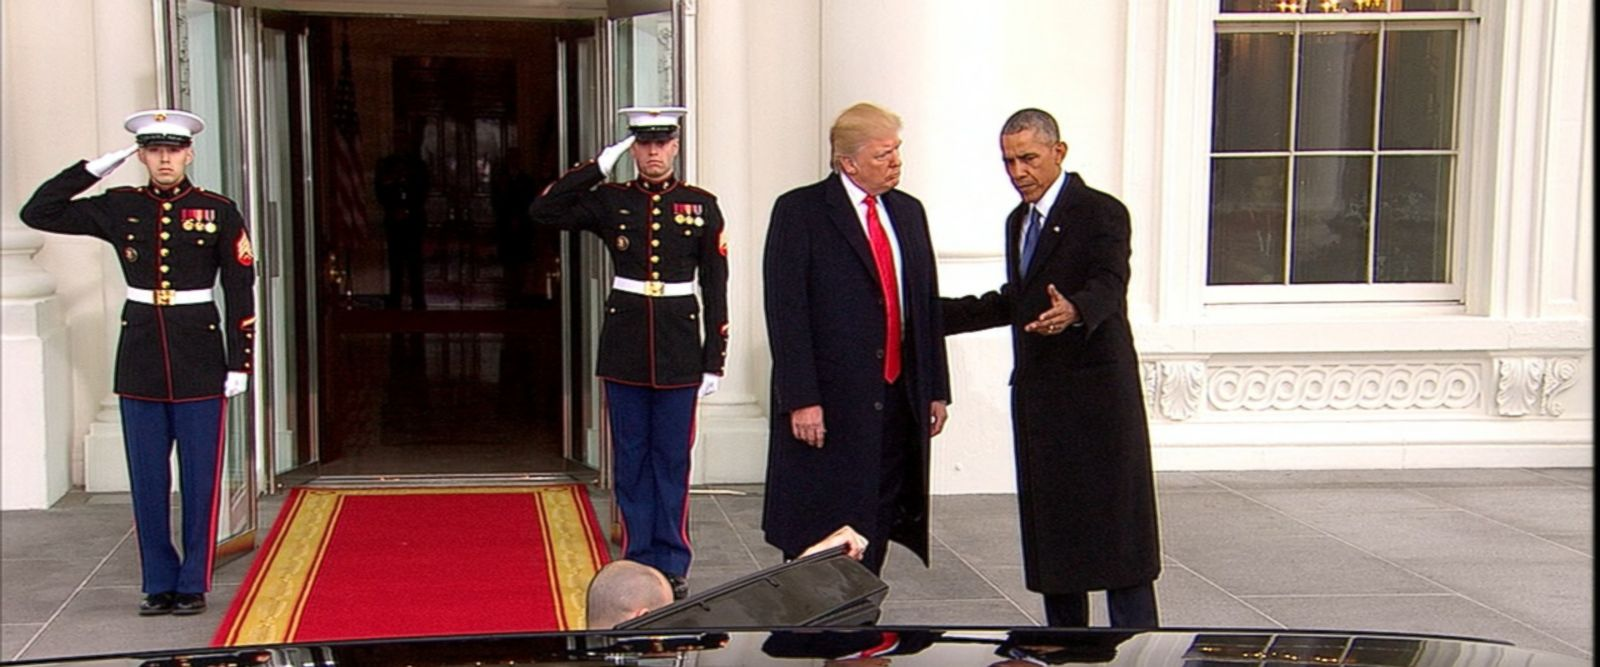 VIDEO: The next time Donald Trump returns to 1600 Pennsylvania Avenue will be as president.